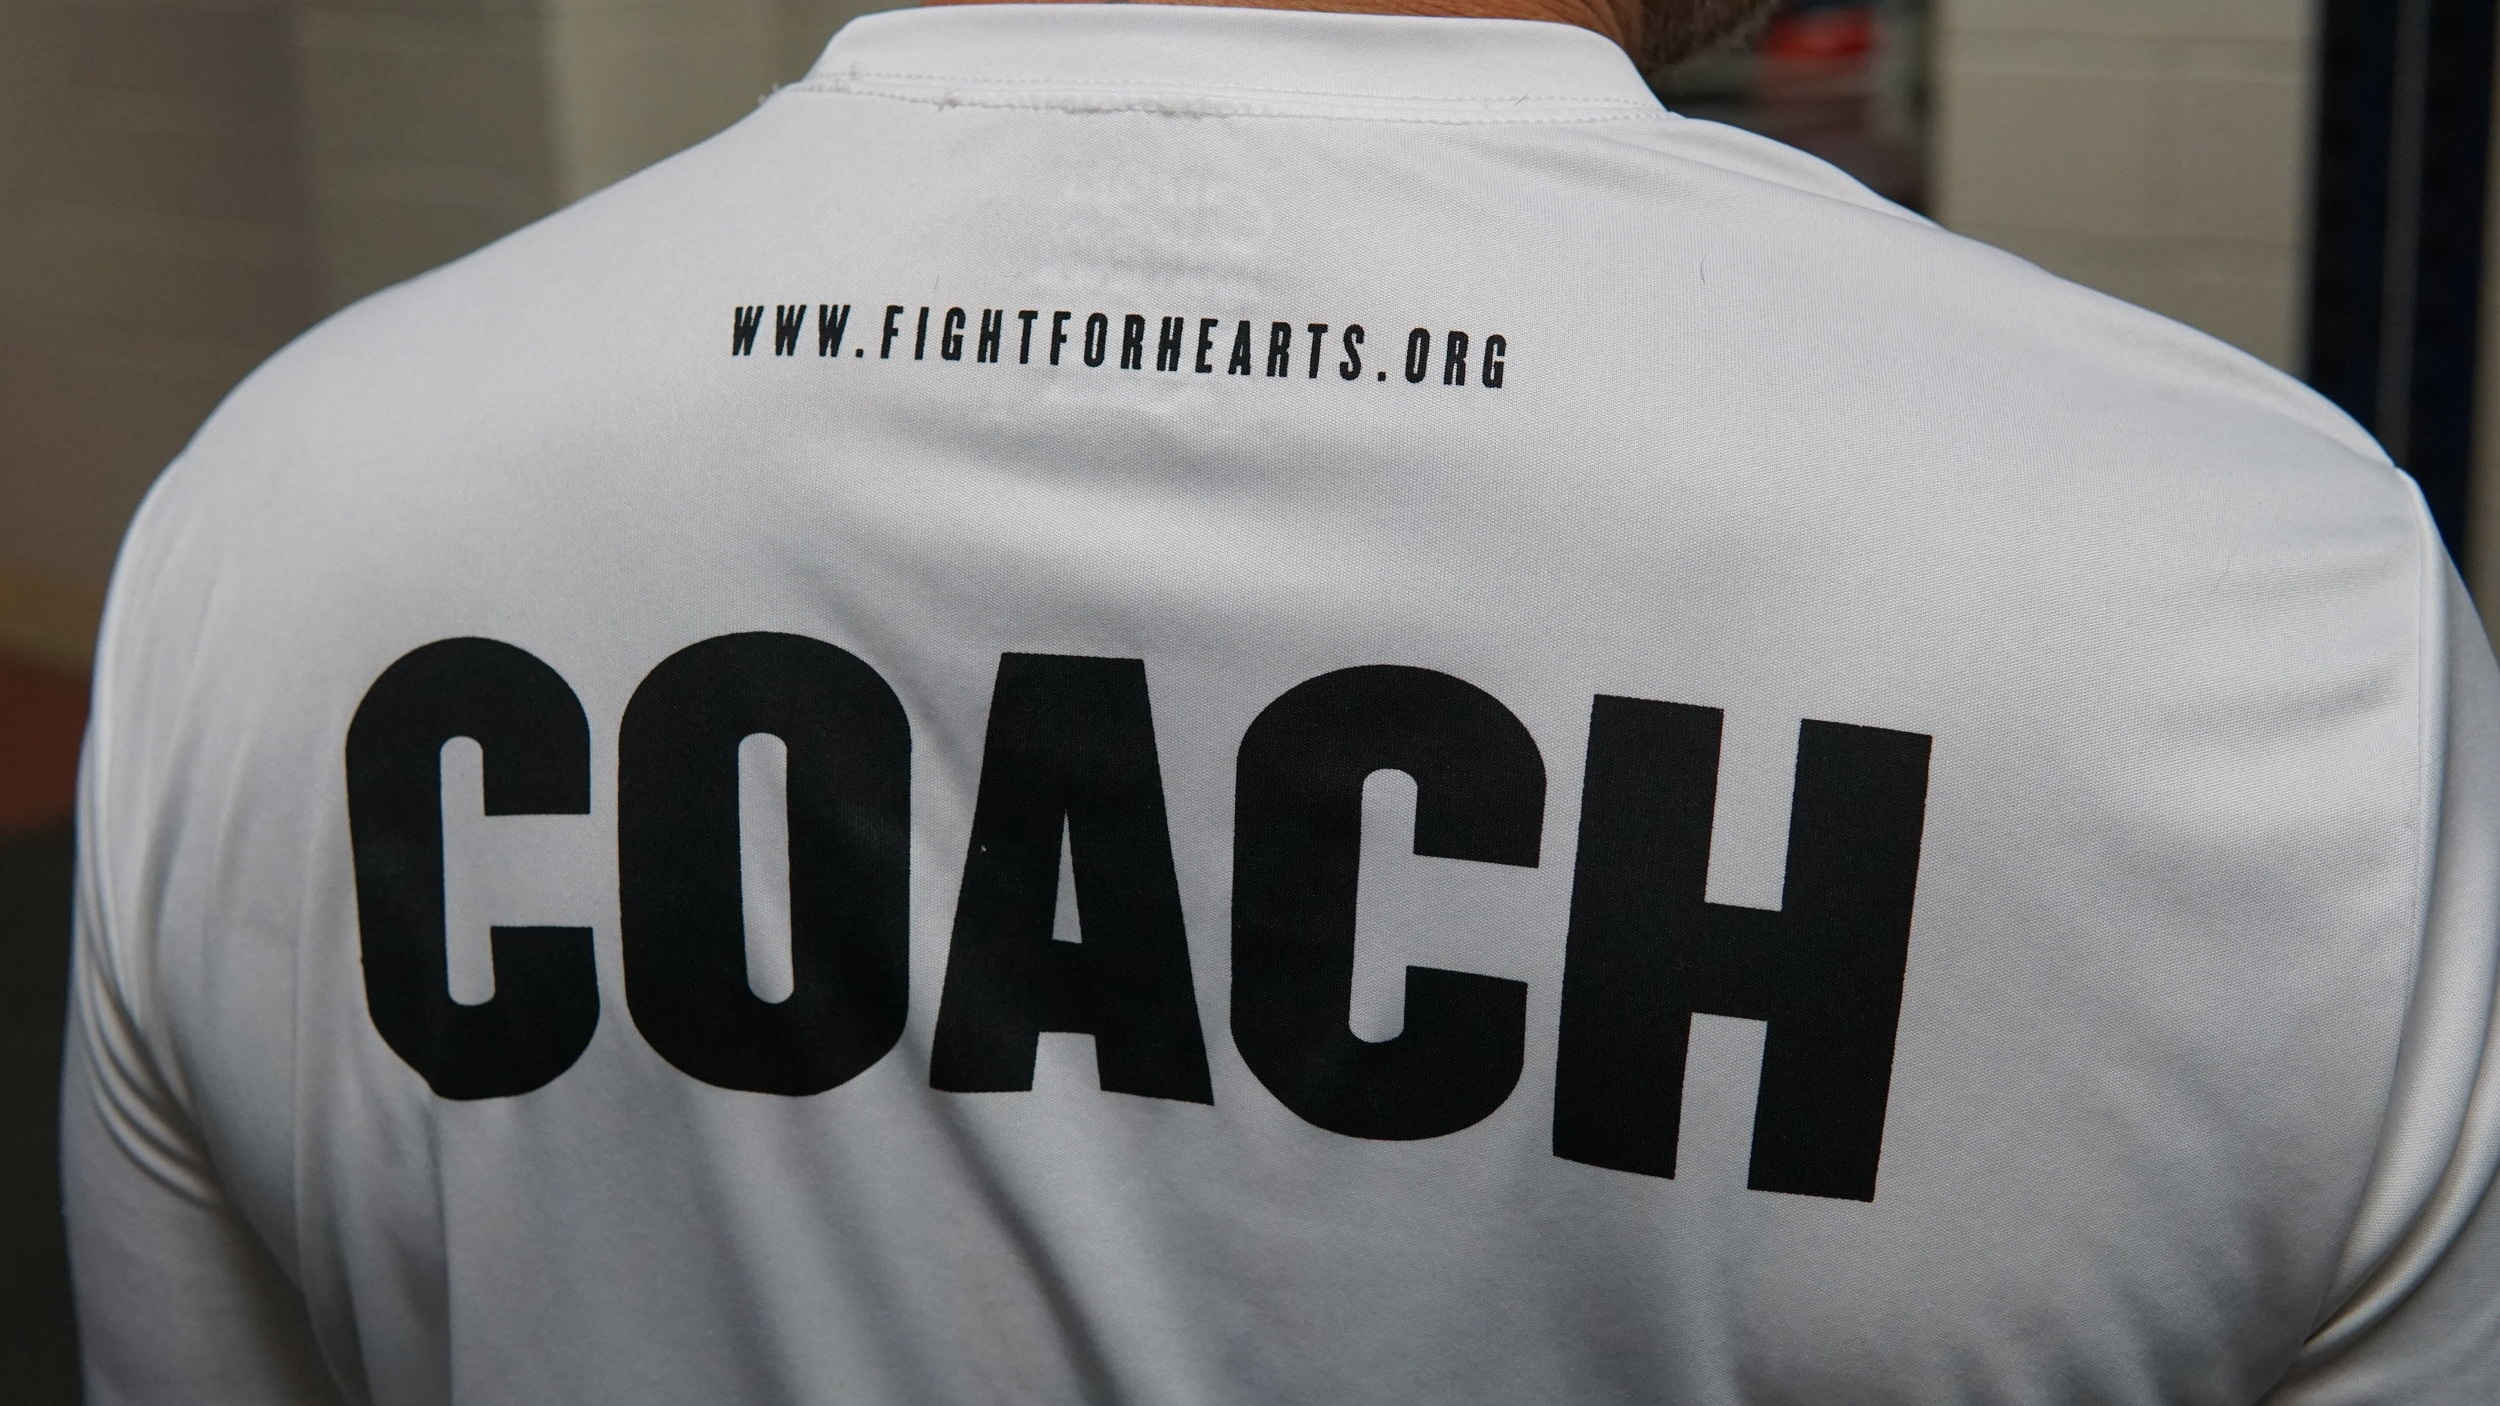 Total of 3 Part Time Coaches - We are able to hire professional instructors, and provide training to our staff.